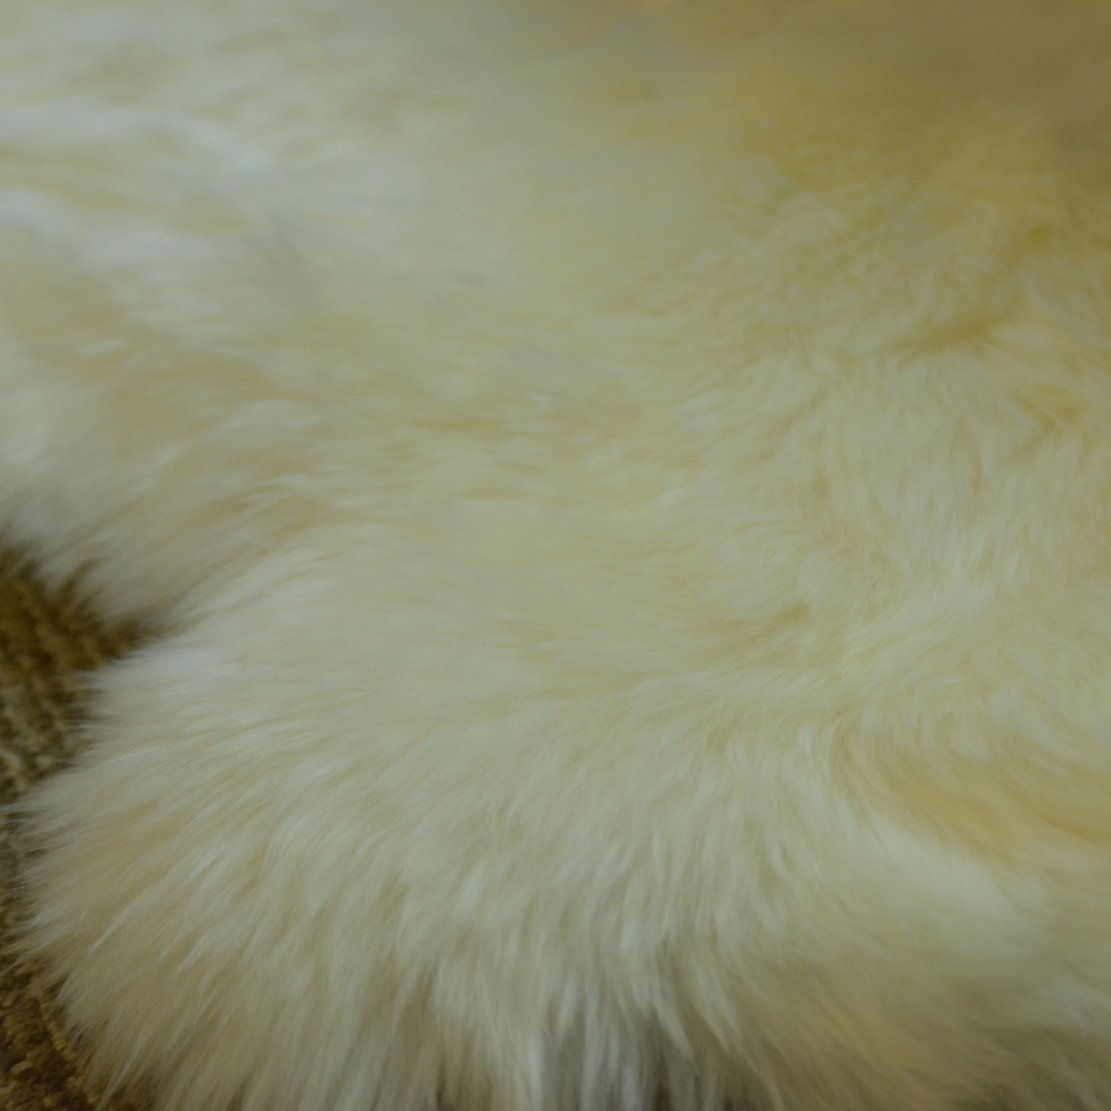 DUMI Sheepskin Fur Rug Double Pelt Sheepskin Rug Genuine Soft Natural Merino Lambskins 2 Feet x 6 Feet-Natural White